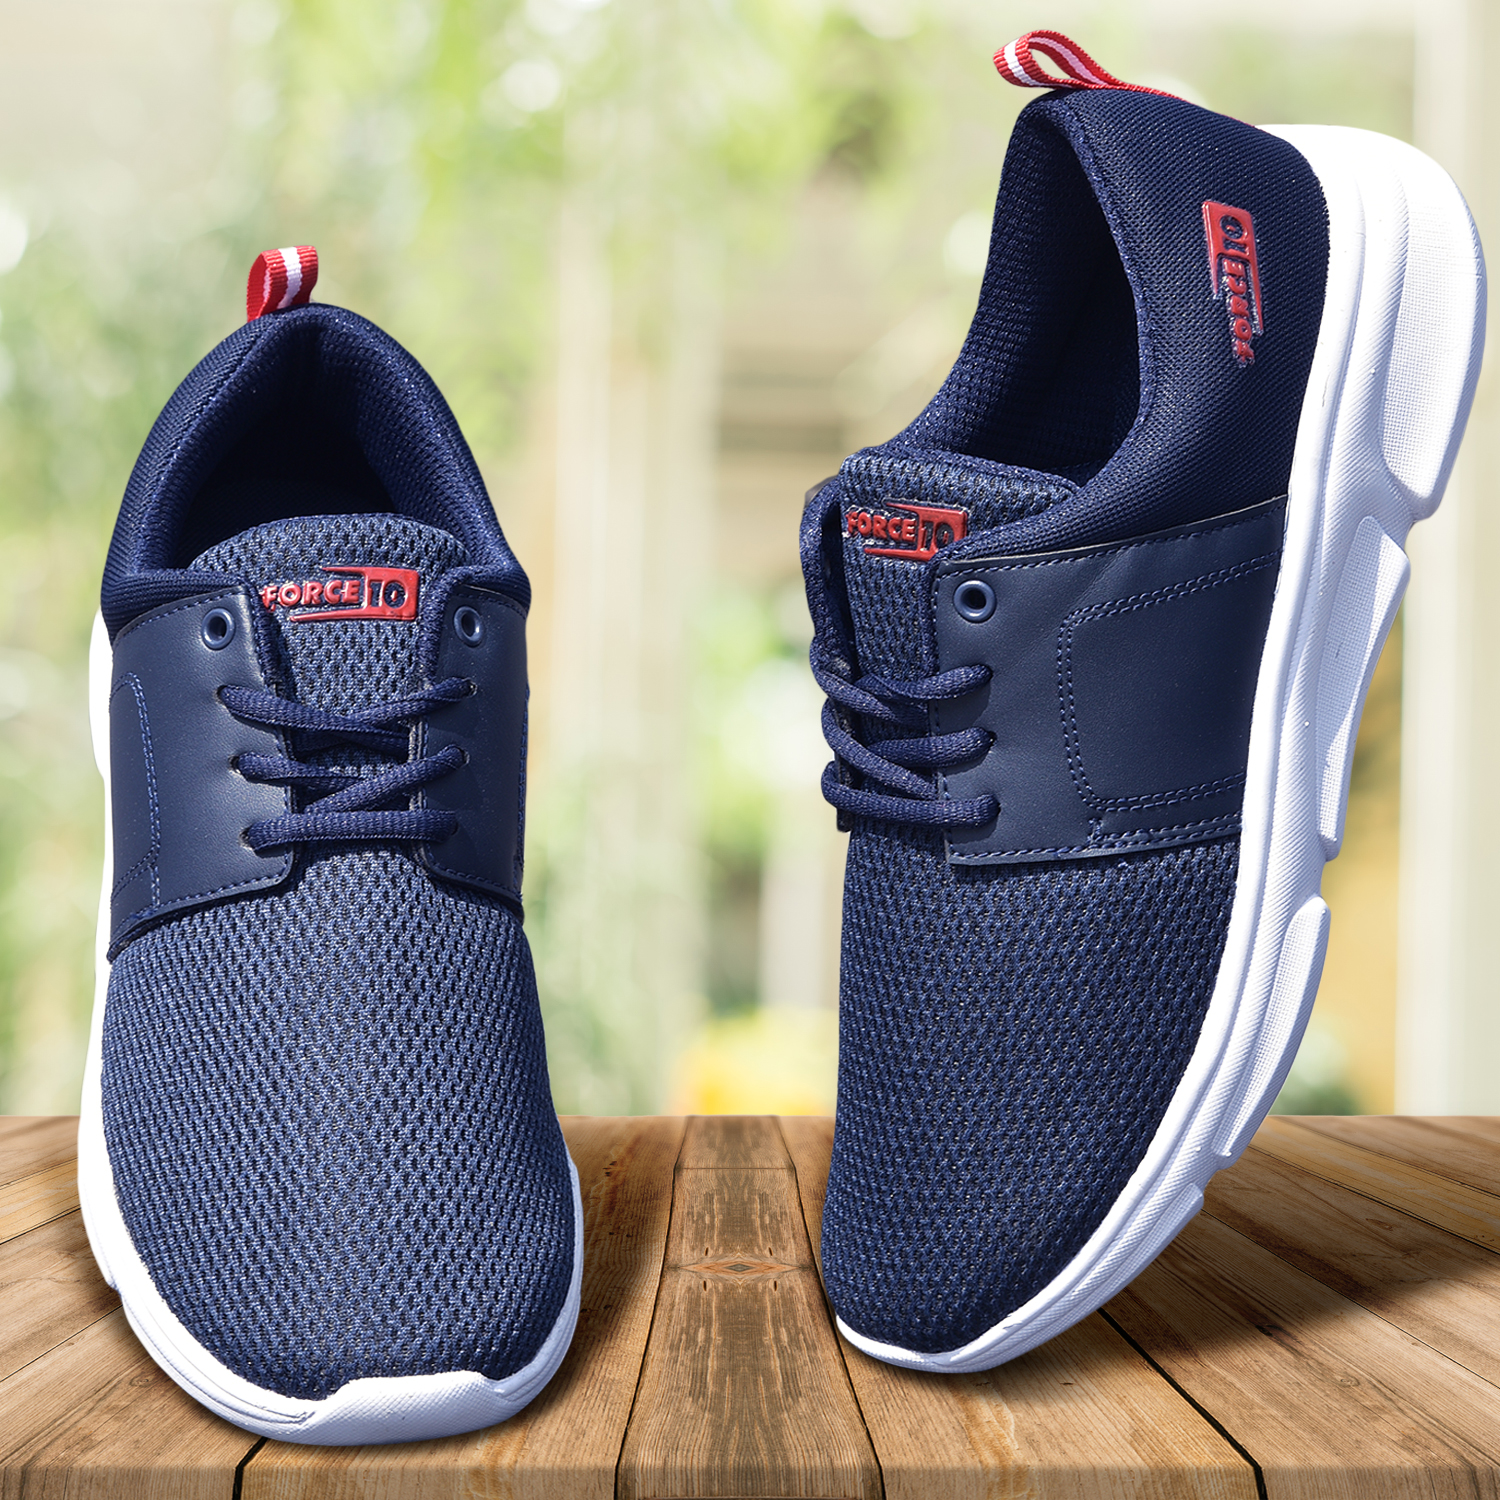 Liberty   Force 10 by Liberty Navy Sports Shoes